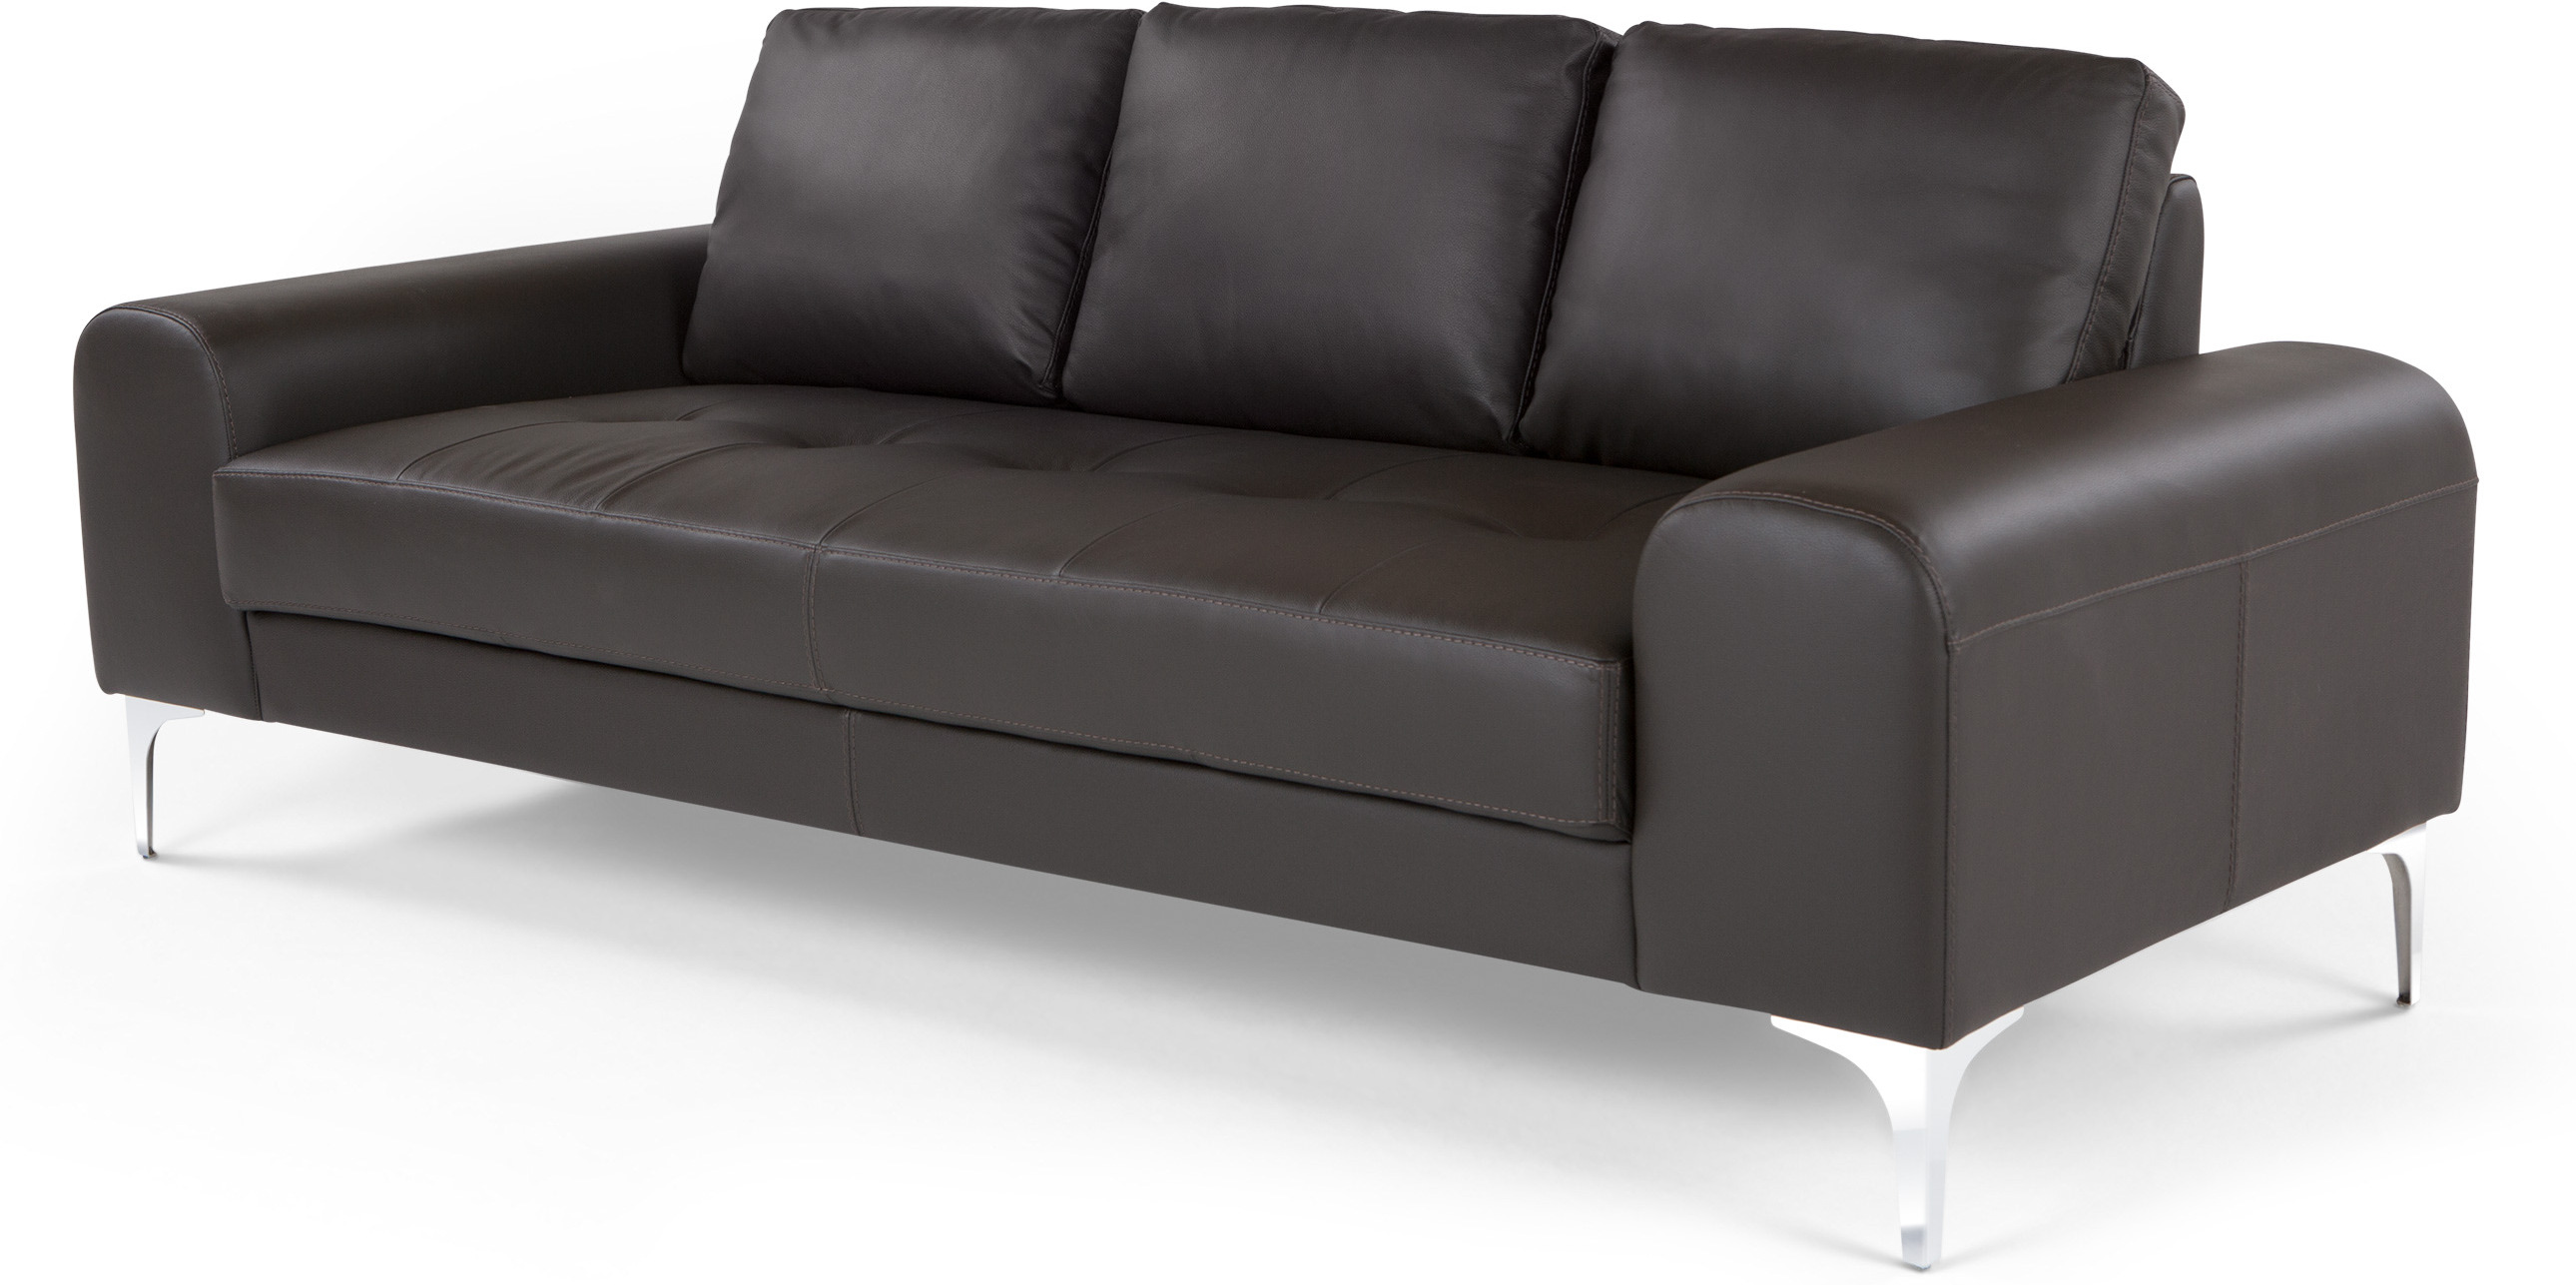 leather sofas cheap prices sofa set designs for small drawing room buy italian compare